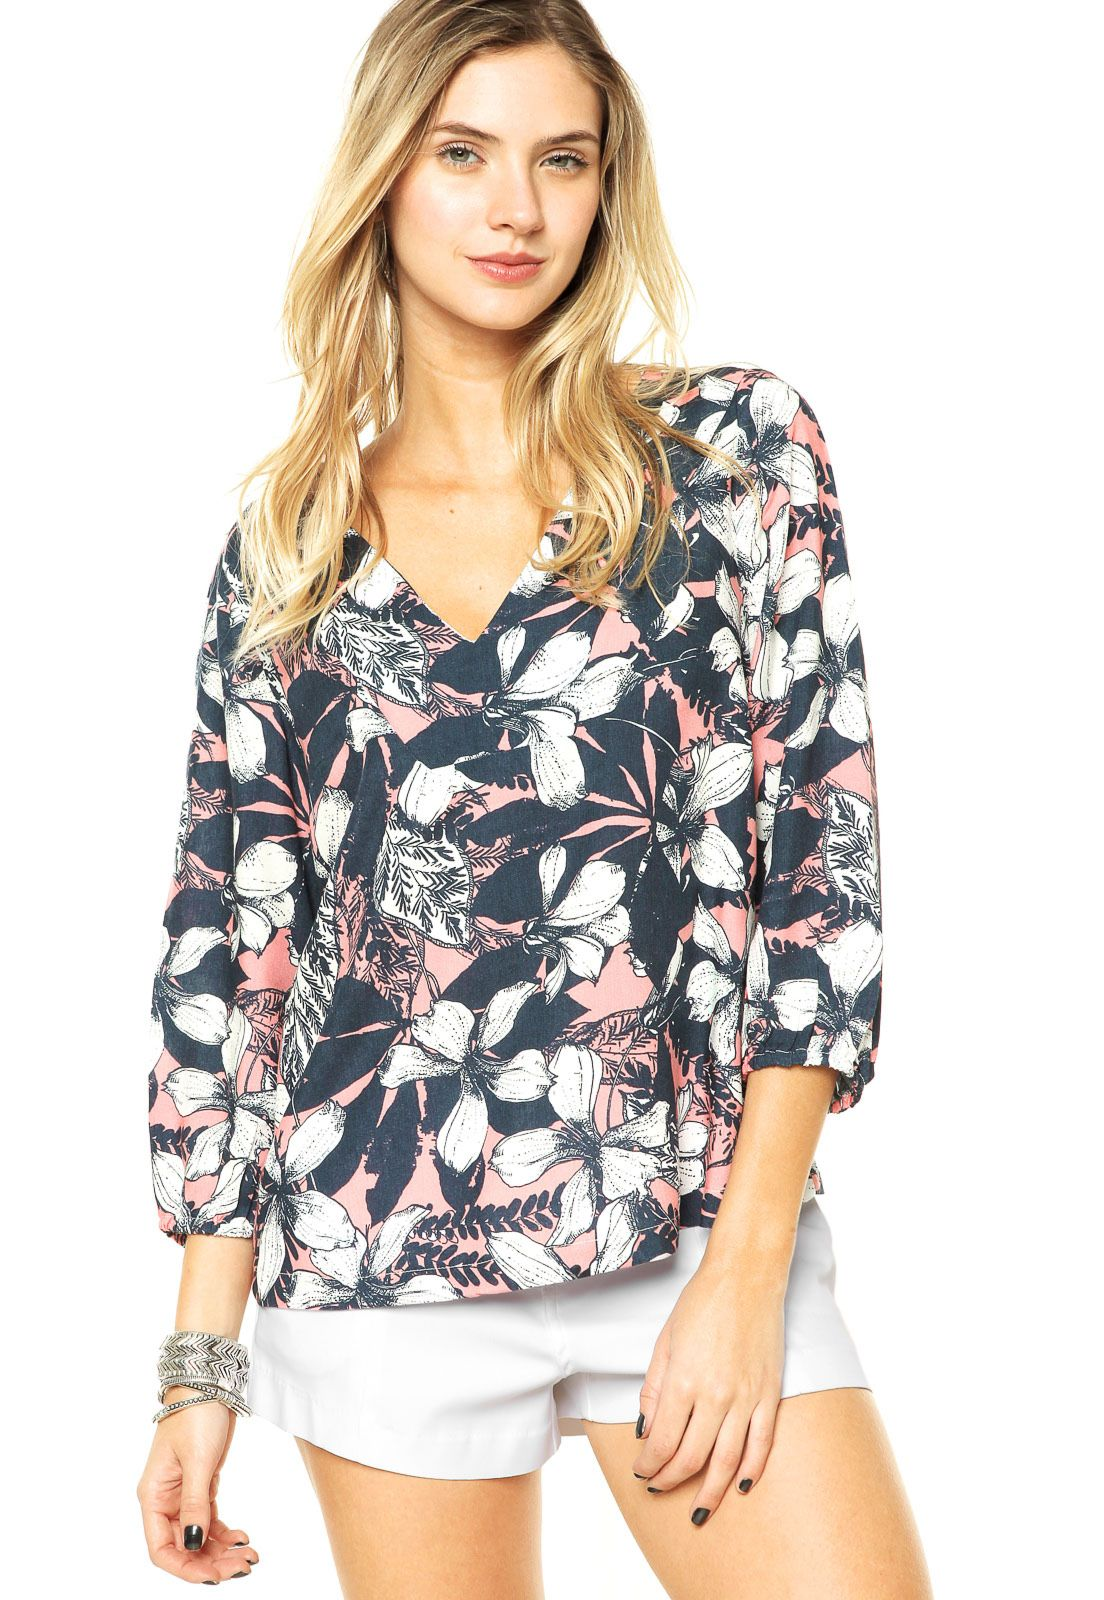 Blusa Mercatto Flores Rosa - Marca Mercatto